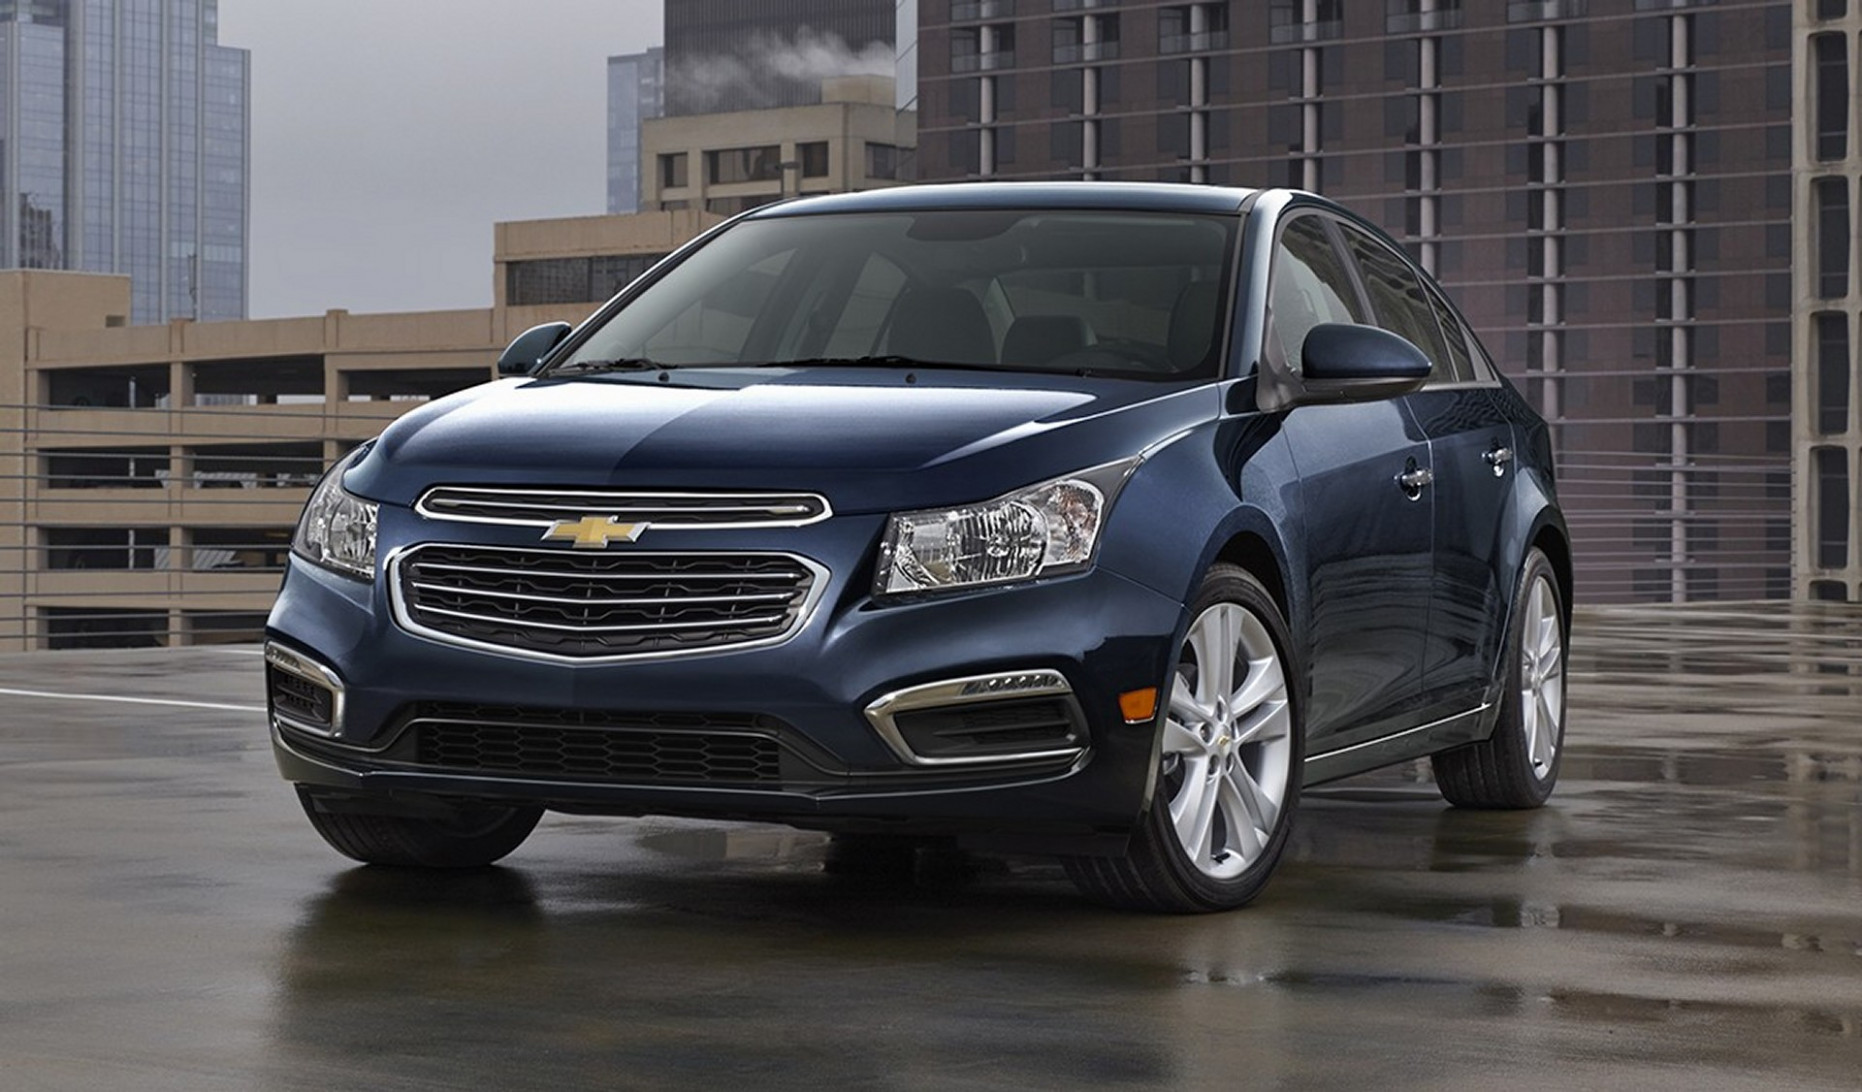 Pricing 2022 Chevy Cruze